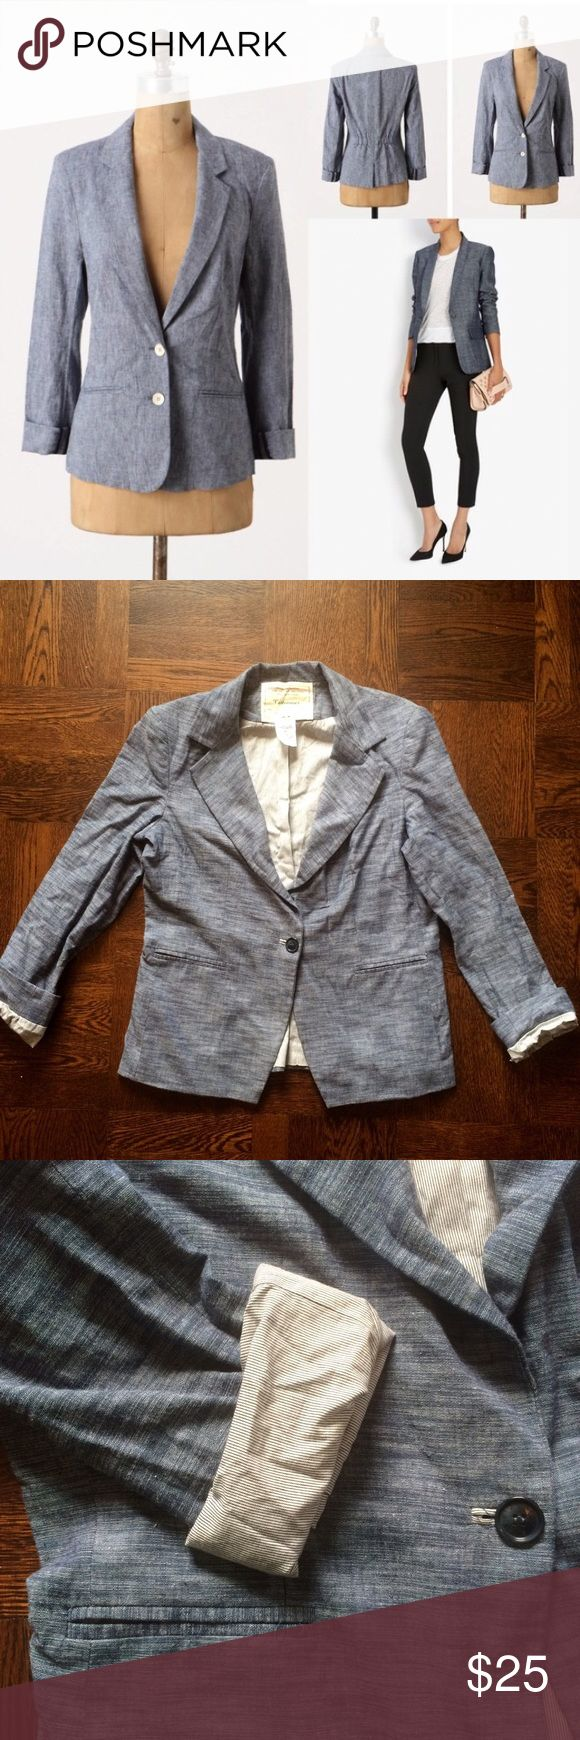 Anthropologie  Cartonnier Chambray Blazer This is a chambray blazer from Anthropologie. It is the single button version of the first pic. No elastic in the back. It is made to be worn with the sleeves cuffed to show the cute striped lining. No signs of wear except a couple of stains shown in the 4th pic. I think they will come out with cleaning. Sizing is a bit small for a large, but it would look great as a slightly oversized blazer with skinny cropped ankle pants. Hidden snap button above…